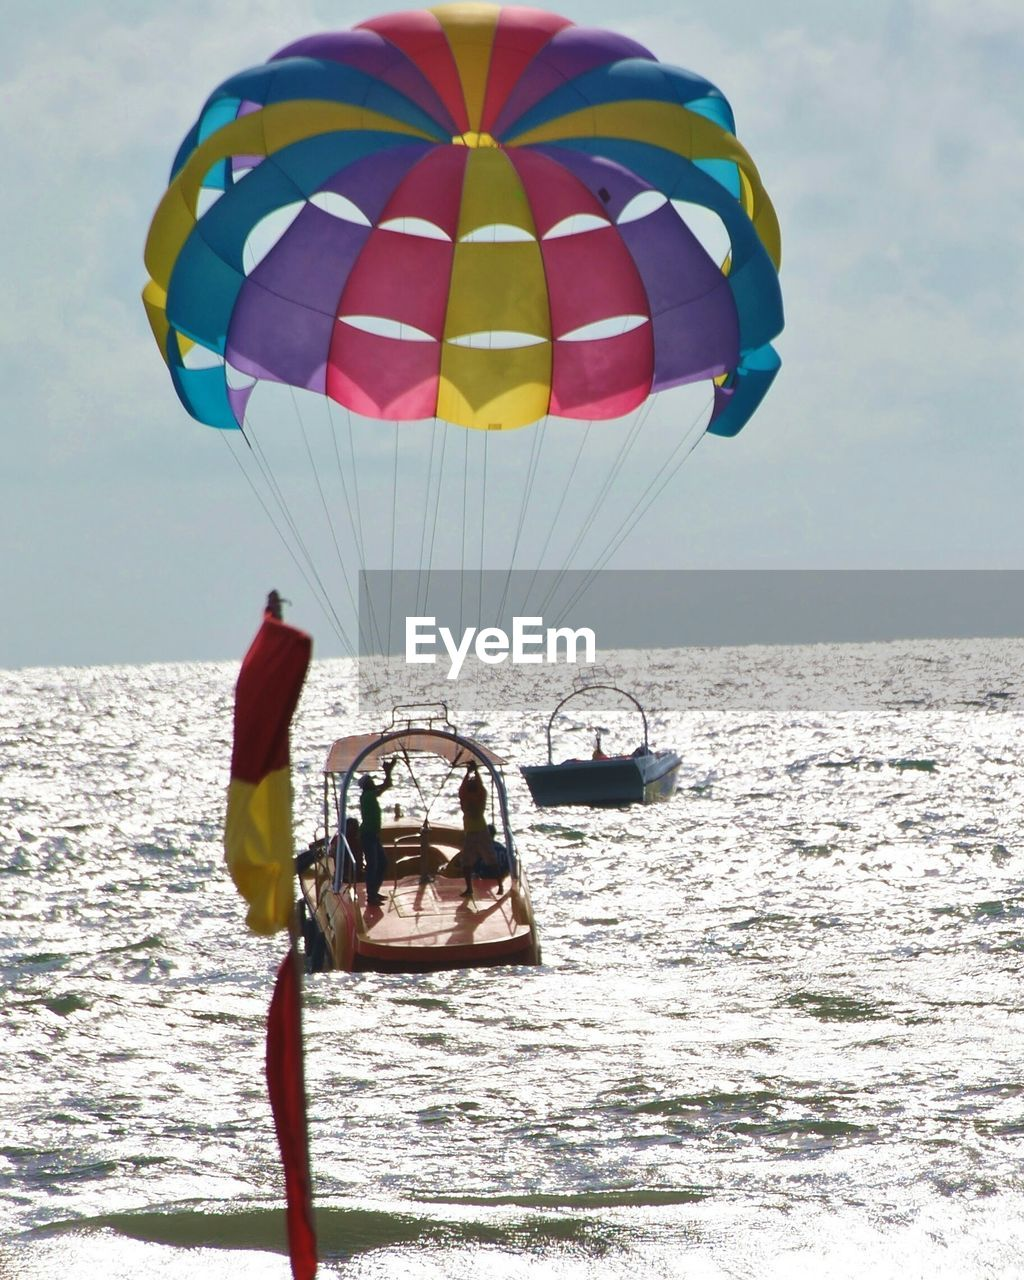 sea, adventure, real people, parachute, extreme sports, leisure activity, water, transportation, parasailing, lifestyles, nature, one person, multi colored, day, sky, outdoors, horizon over water, mid-air, beauty in nature, flying, sport, vacations, scenics, men, paragliding, people